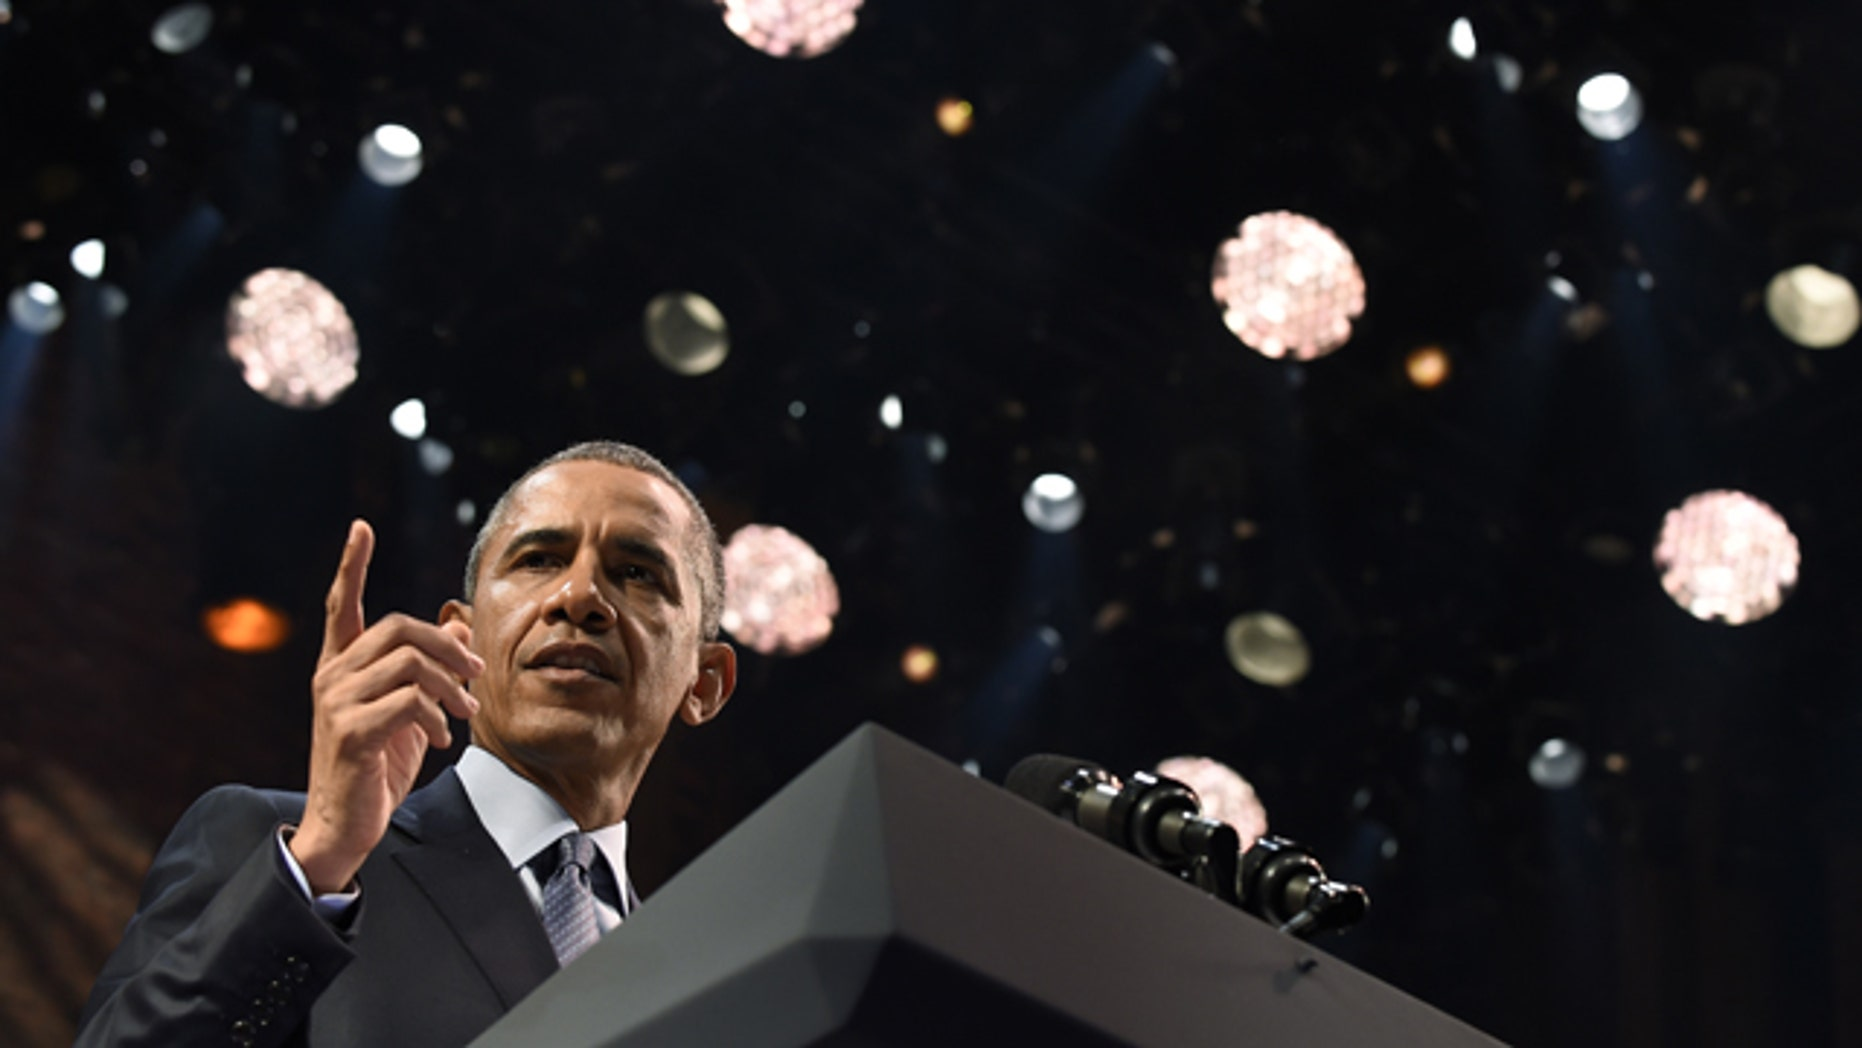 President Barack Obama speaks at the Richard Rodgers Theatre in New York, Monday, Nov. 2, 2015, at a Democratic National Committee fundraiser. (AP Photo/Susan Walsh)